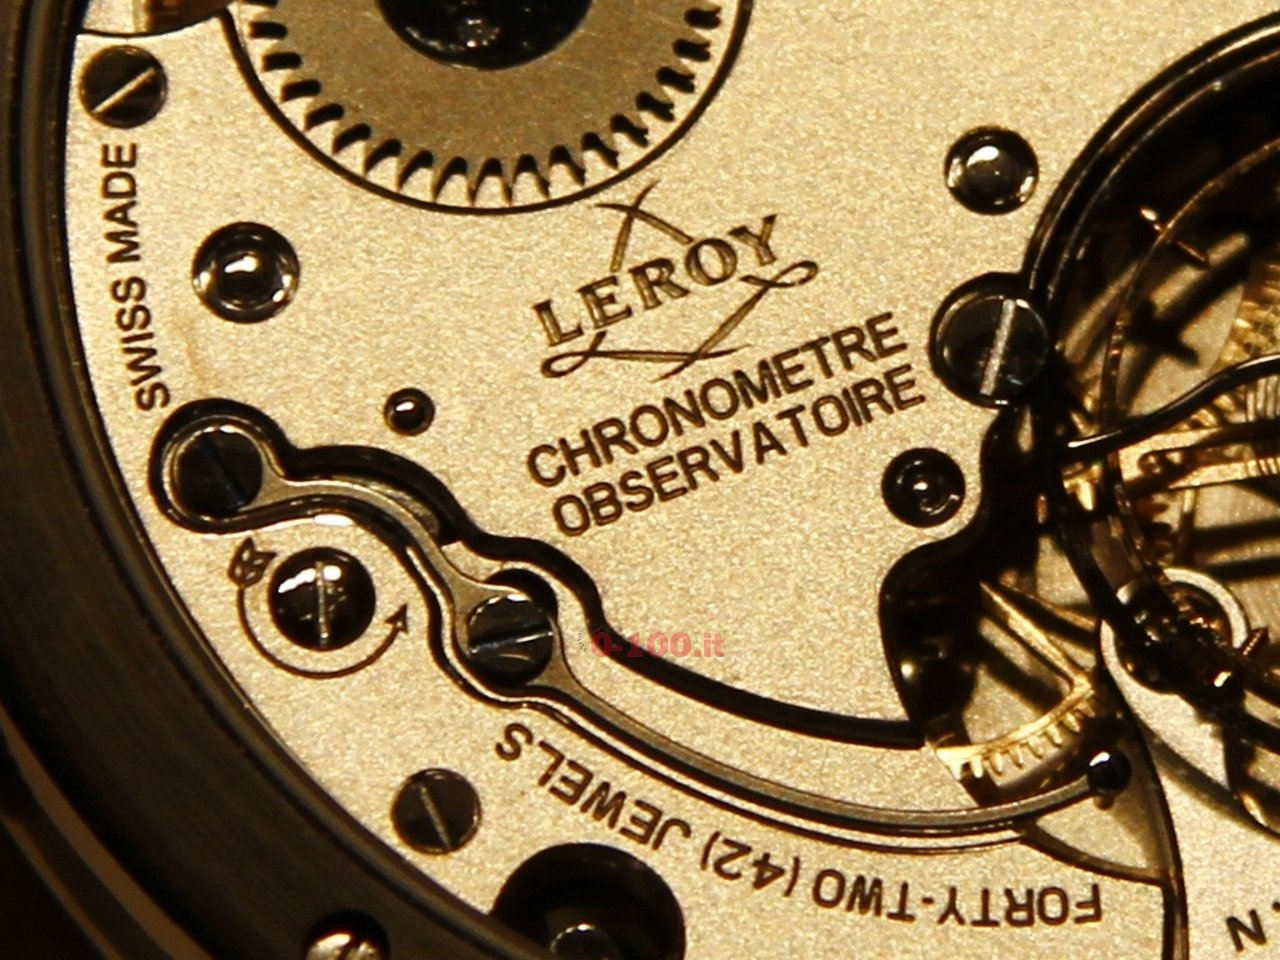 baselworld-2015_leroy-chronometer-l200-0-100-16